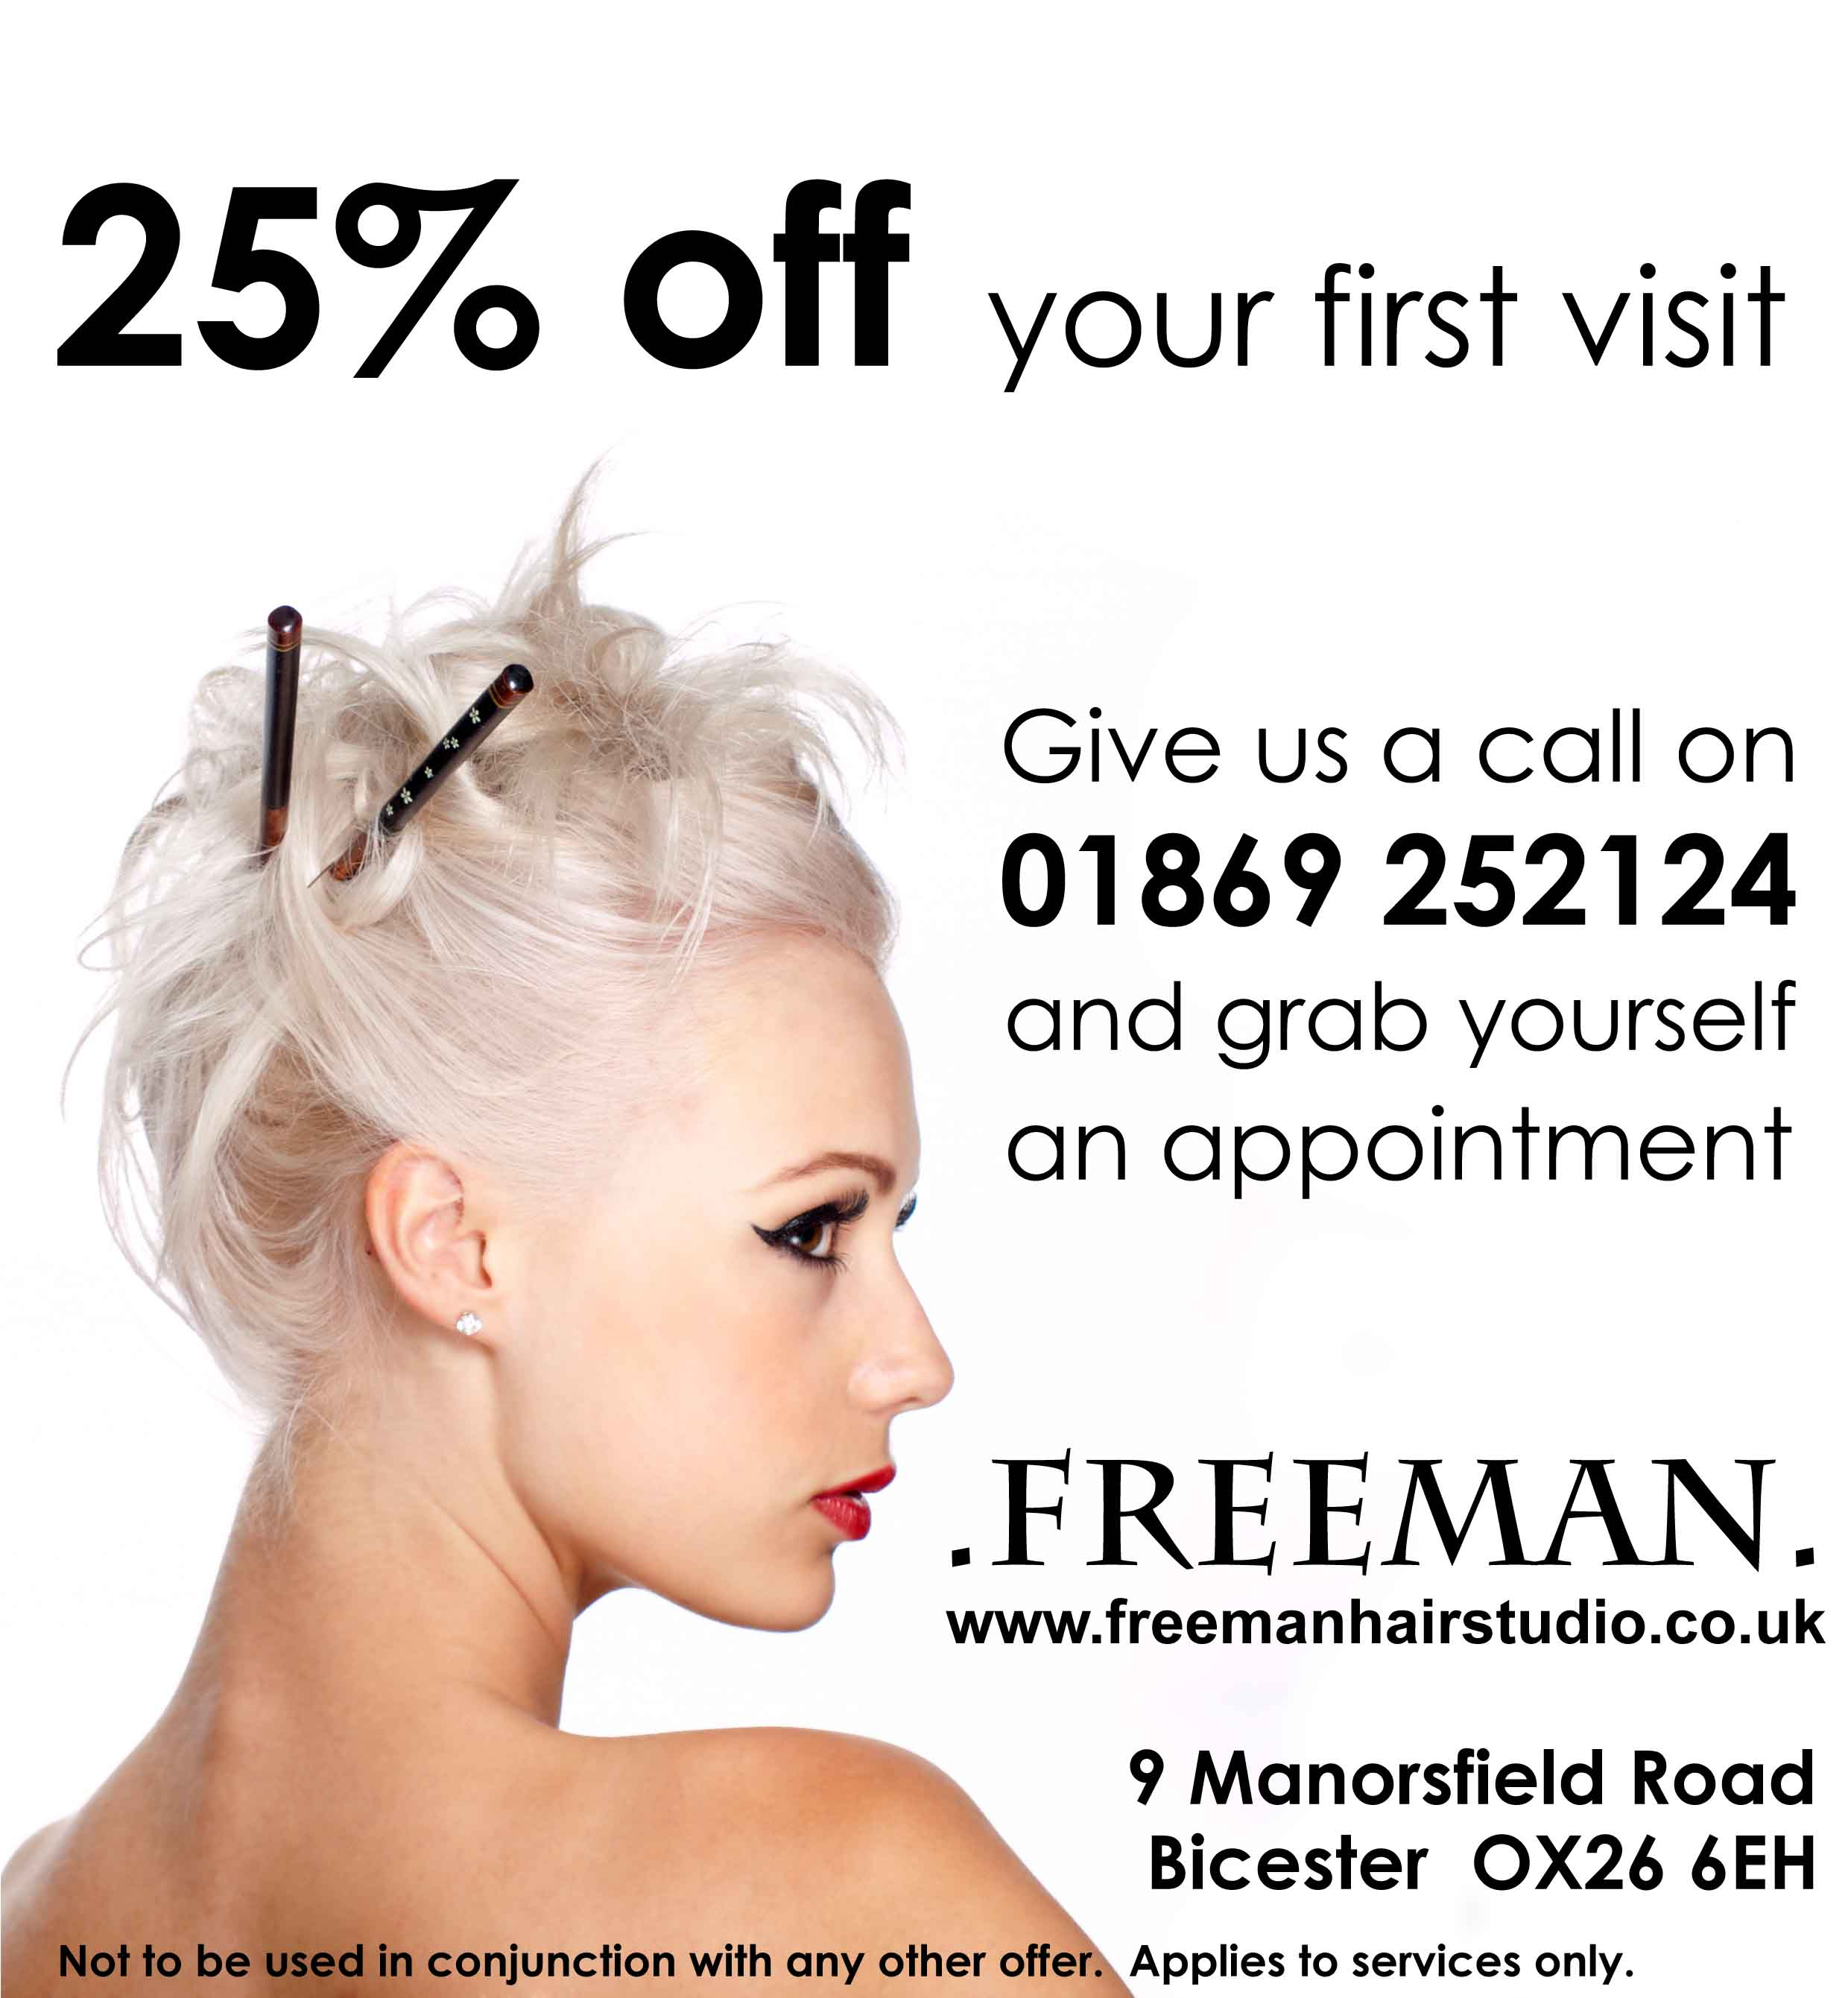 First Visit Discount - If you are a new client, or haven't visited us for over 12 months, we offer a 25% discount on your first visit to the salon.Mention when booking your first appointment.Applies to services only, and can't be used in conjunction with any other offer.